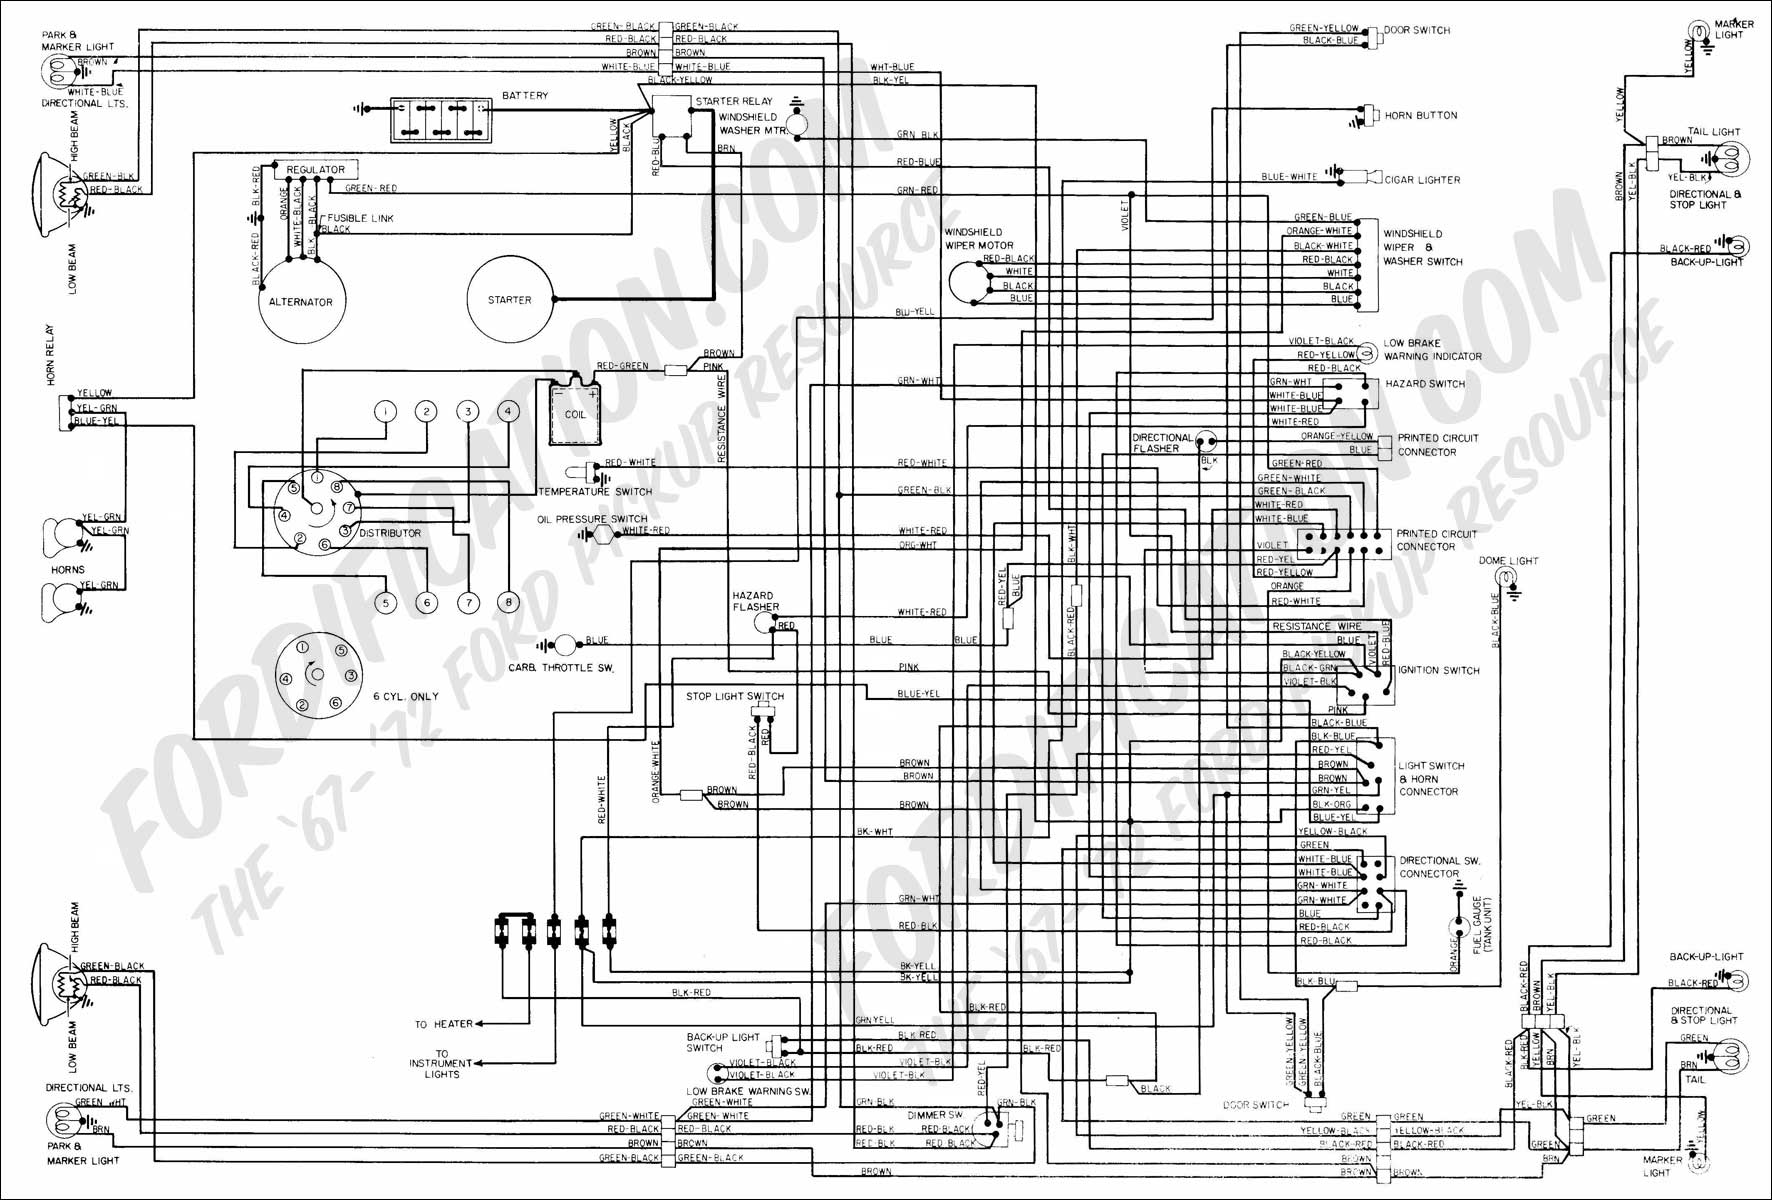 wiring diagram 72_quick ford focus 2008 wiring diagram pdf efcaviation com 2008 ford focus wiring diagram at gsmx.co